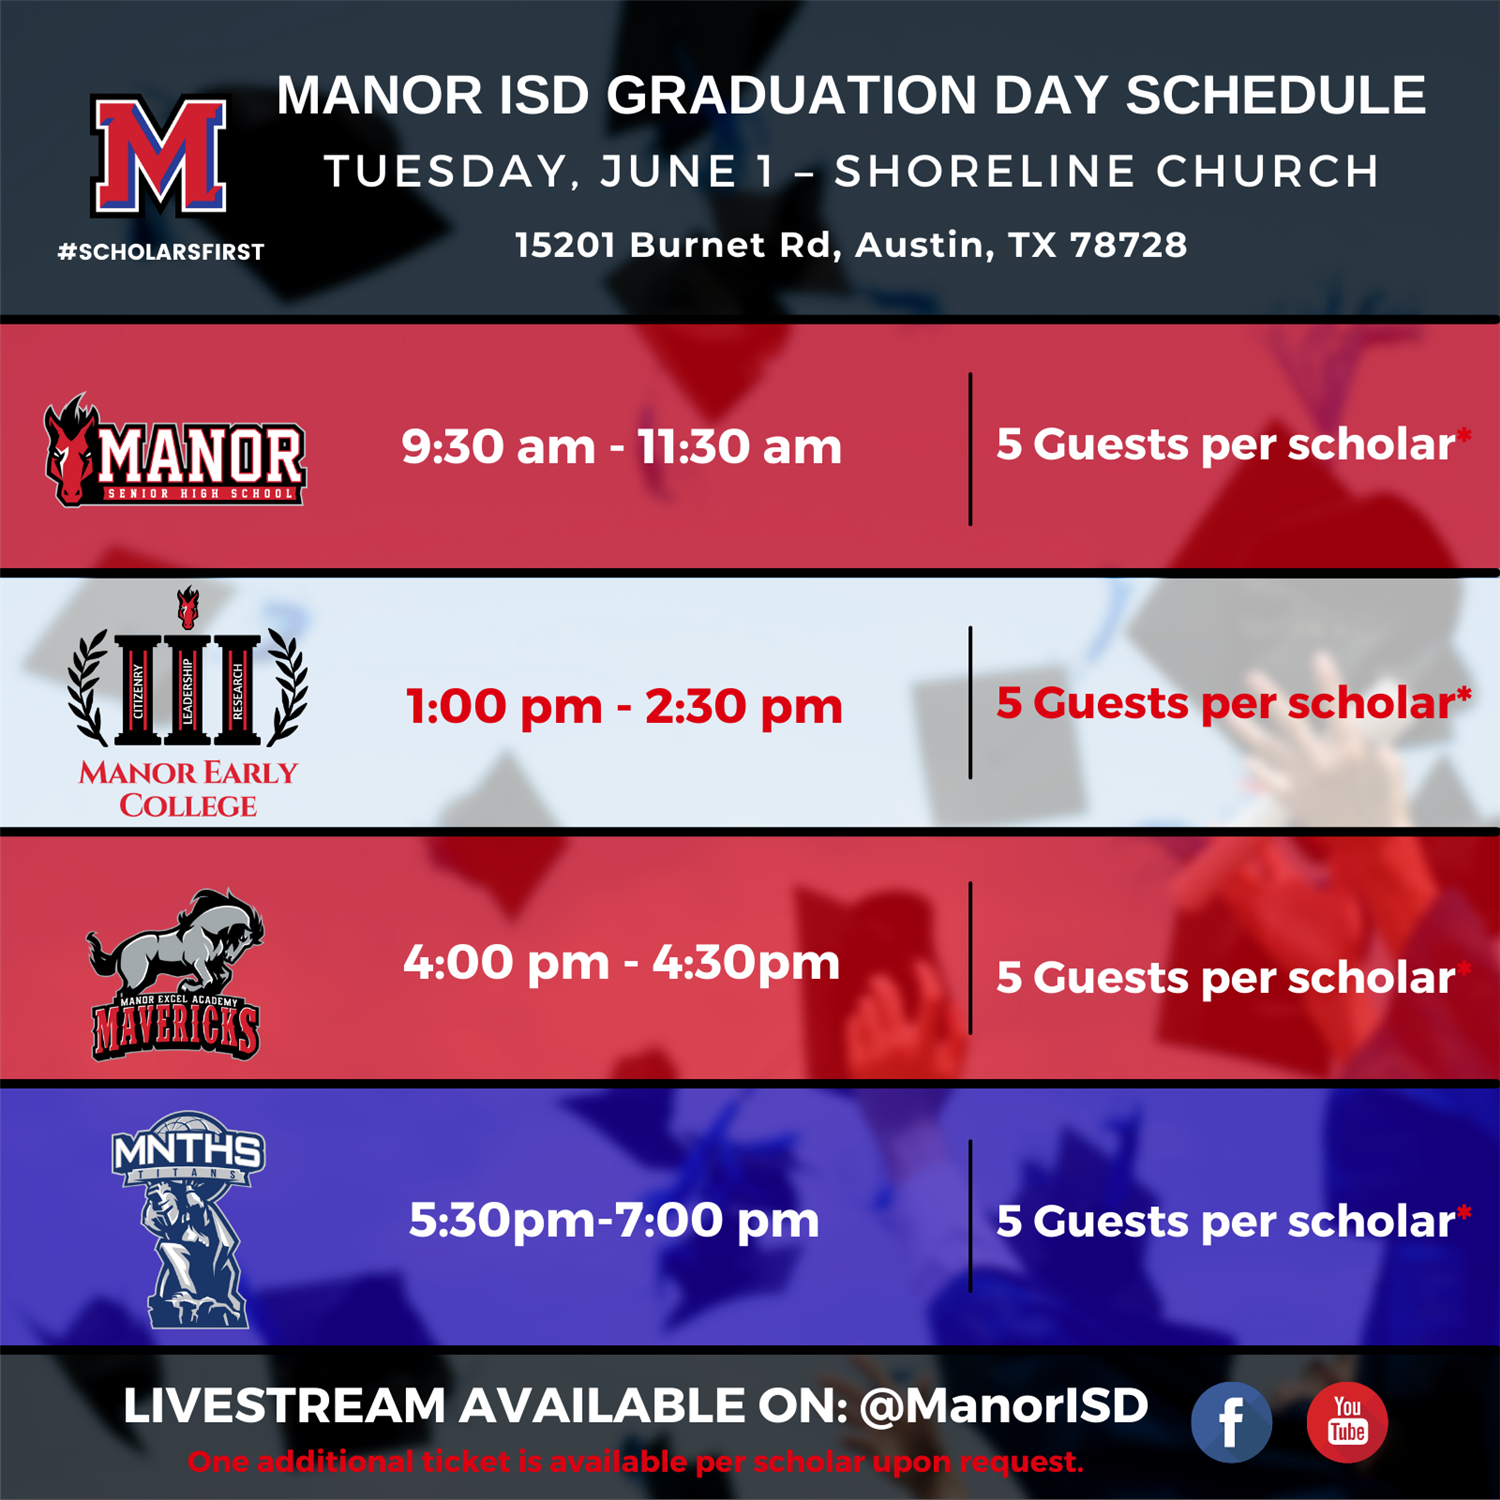 Manor ISD Graduation Day Schedule 2021.png